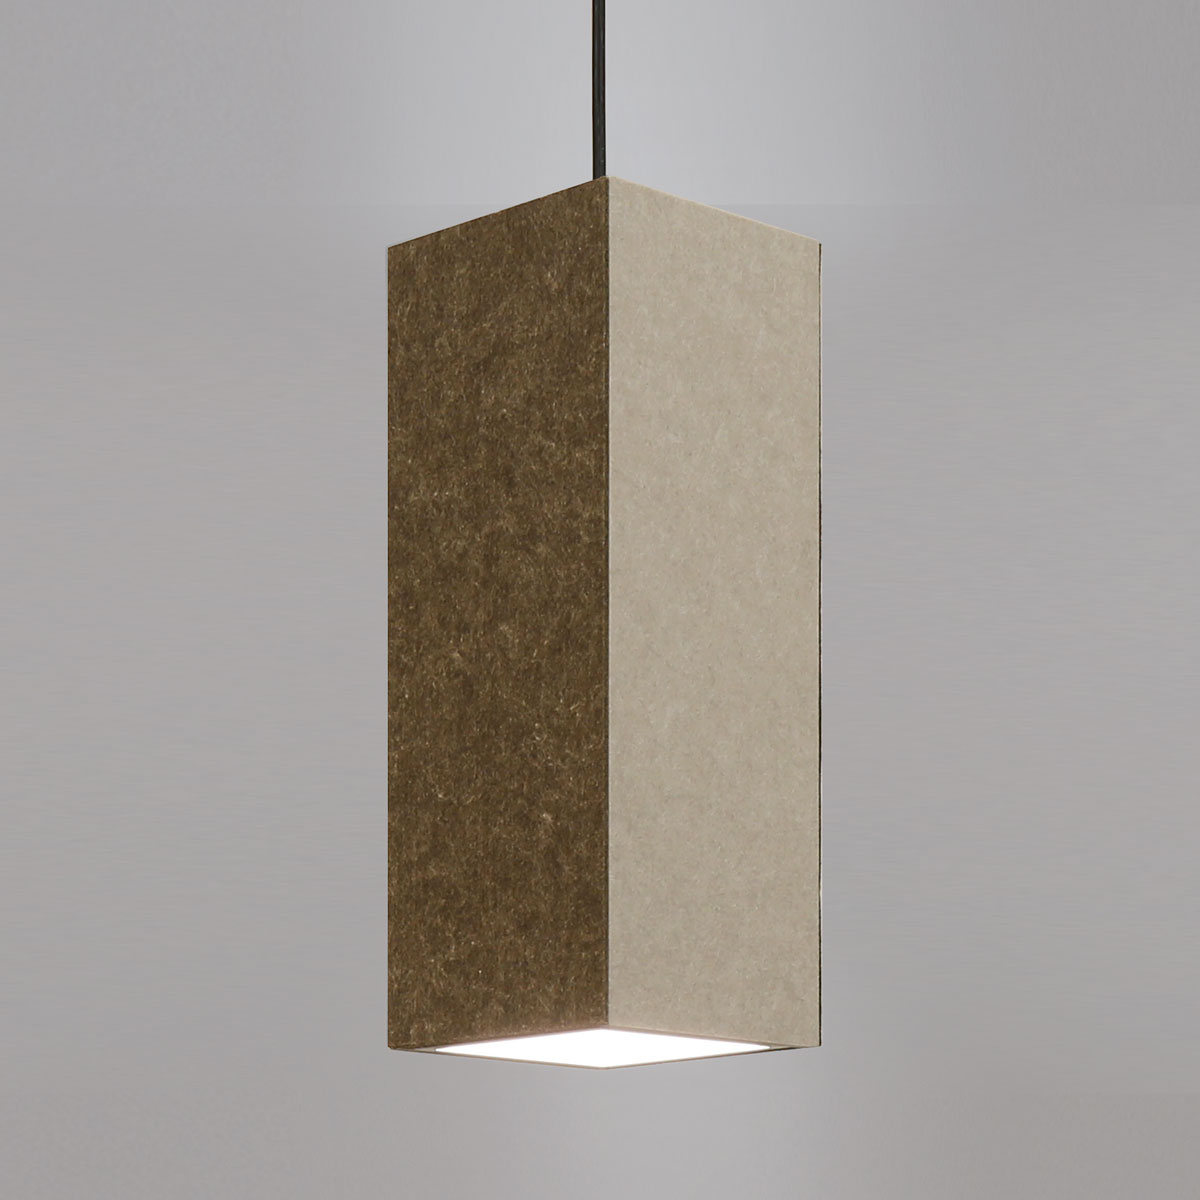 Acoustic LED pendant light with your choice of 2 of our 20 standard acoustic shade colors.